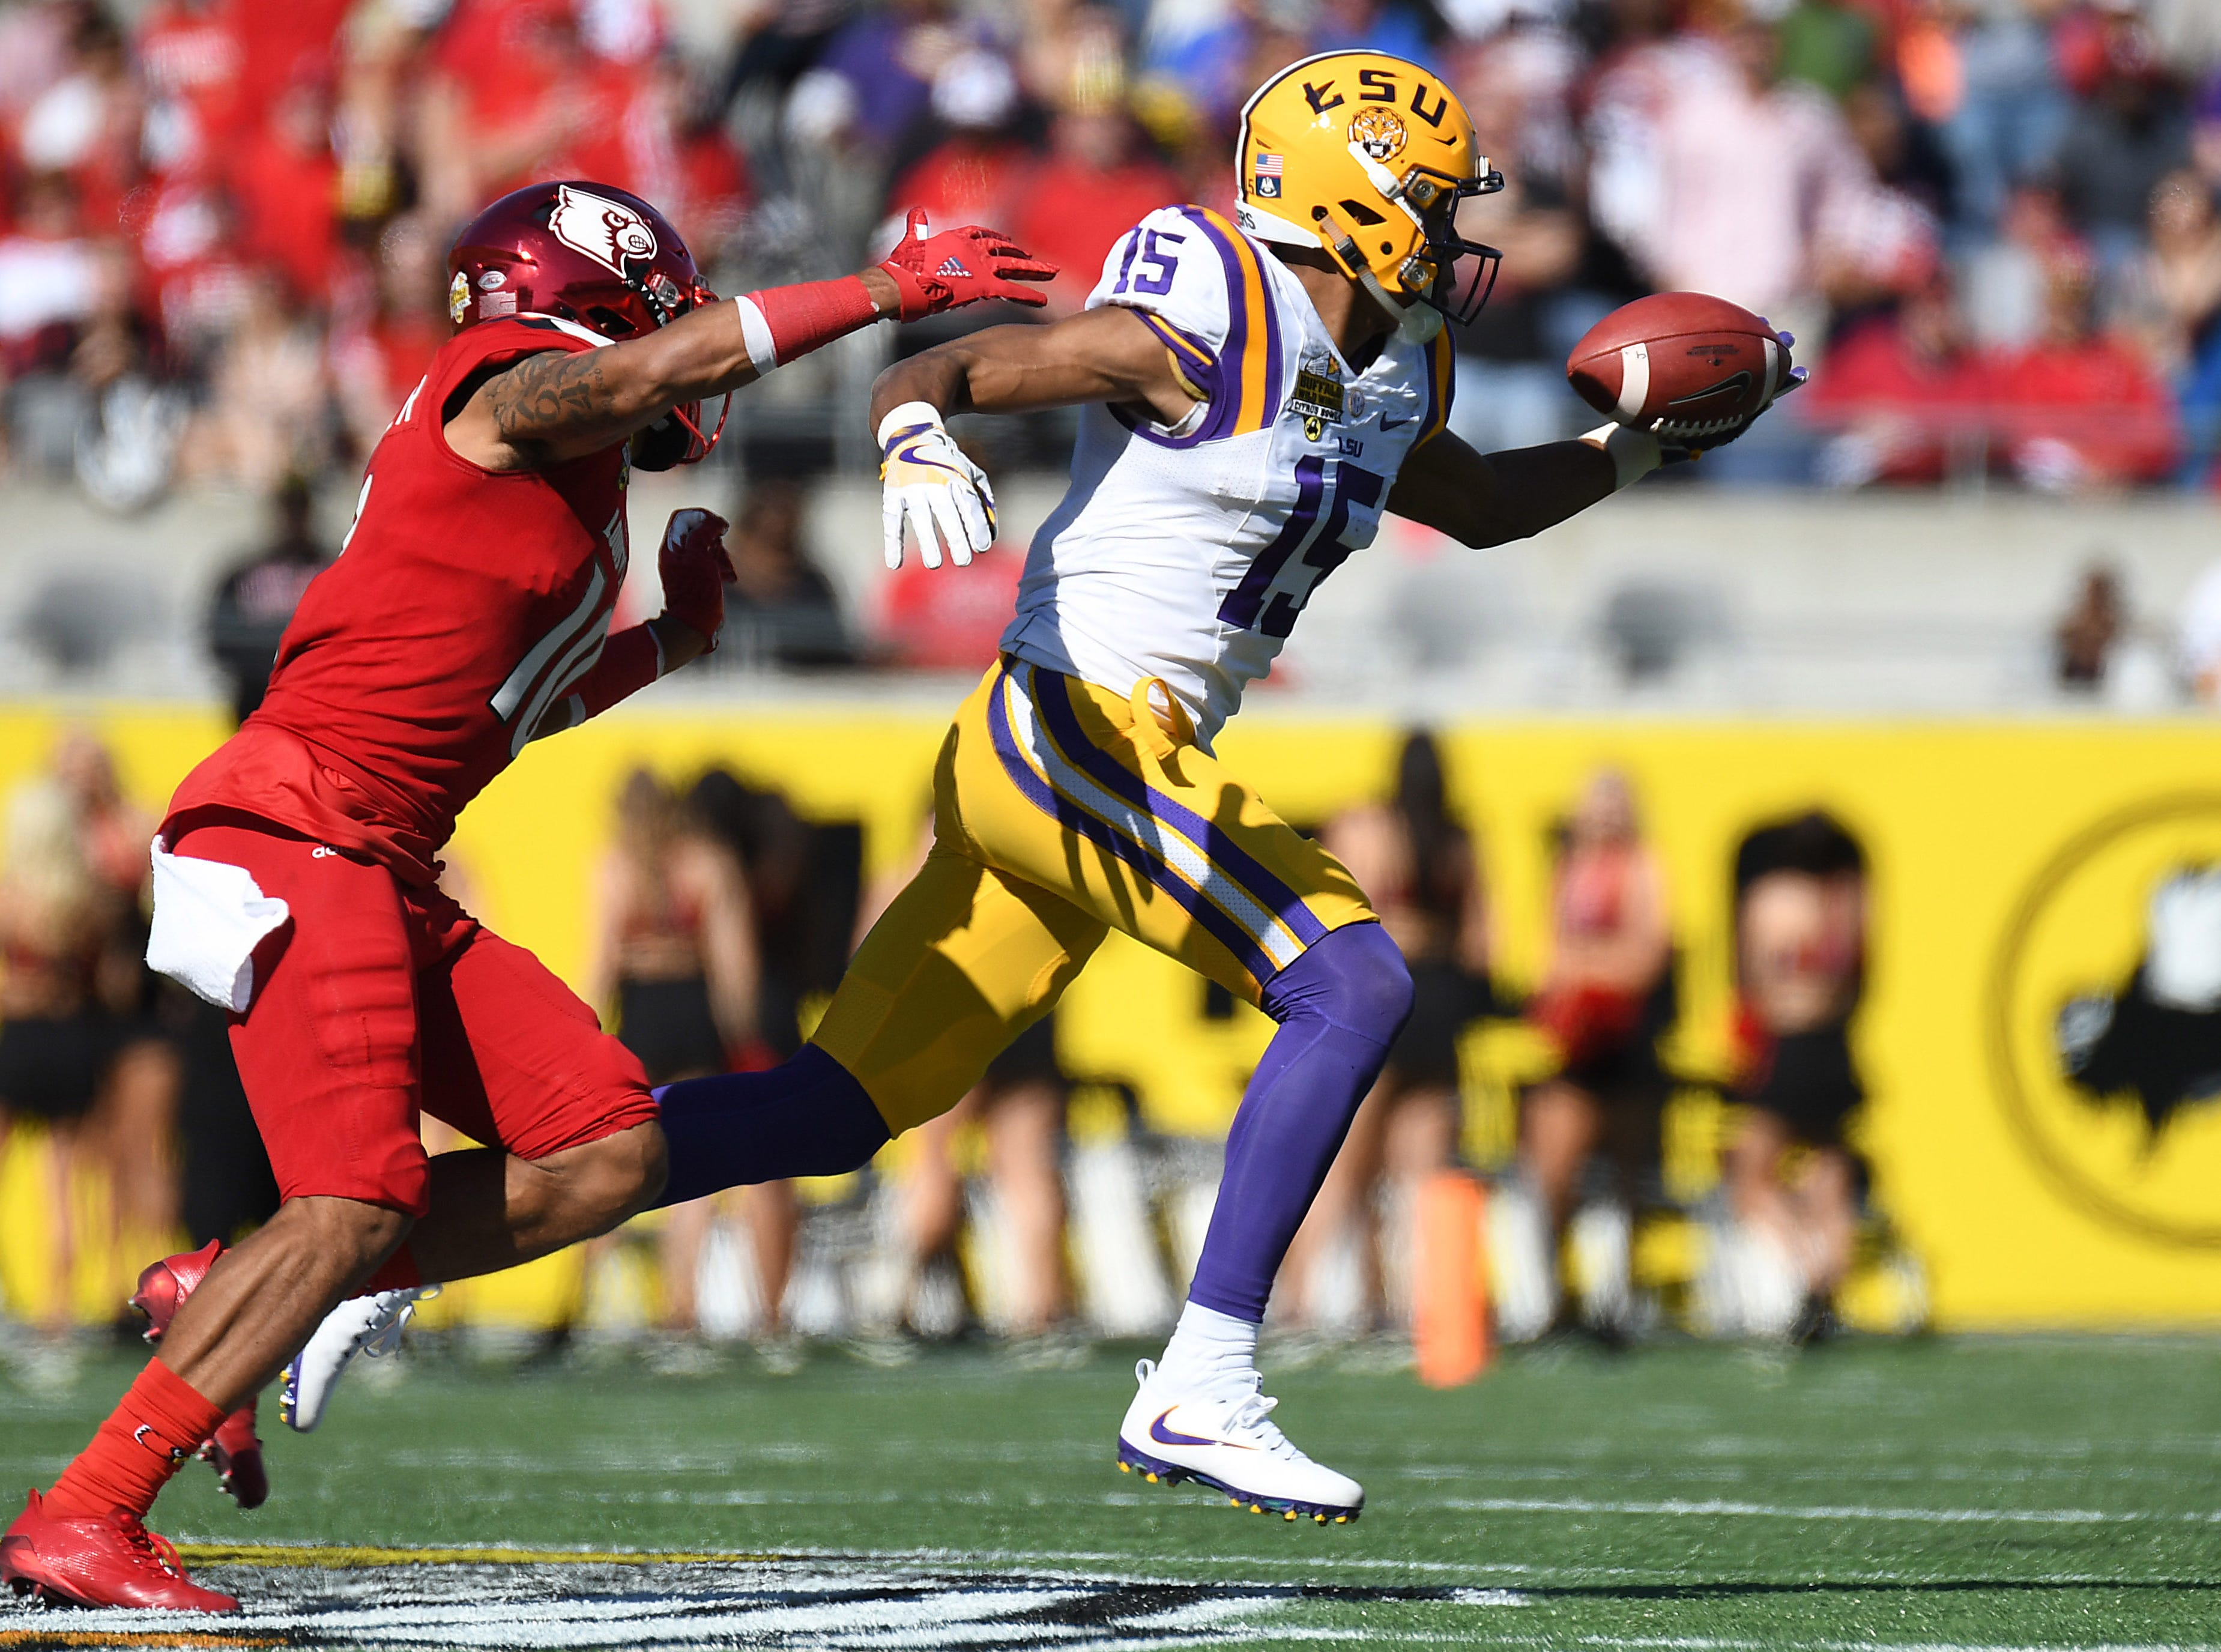 LSU receiver Malachi Dupre makes a one handed catch against Louisville during a game at Camping World Stadium.